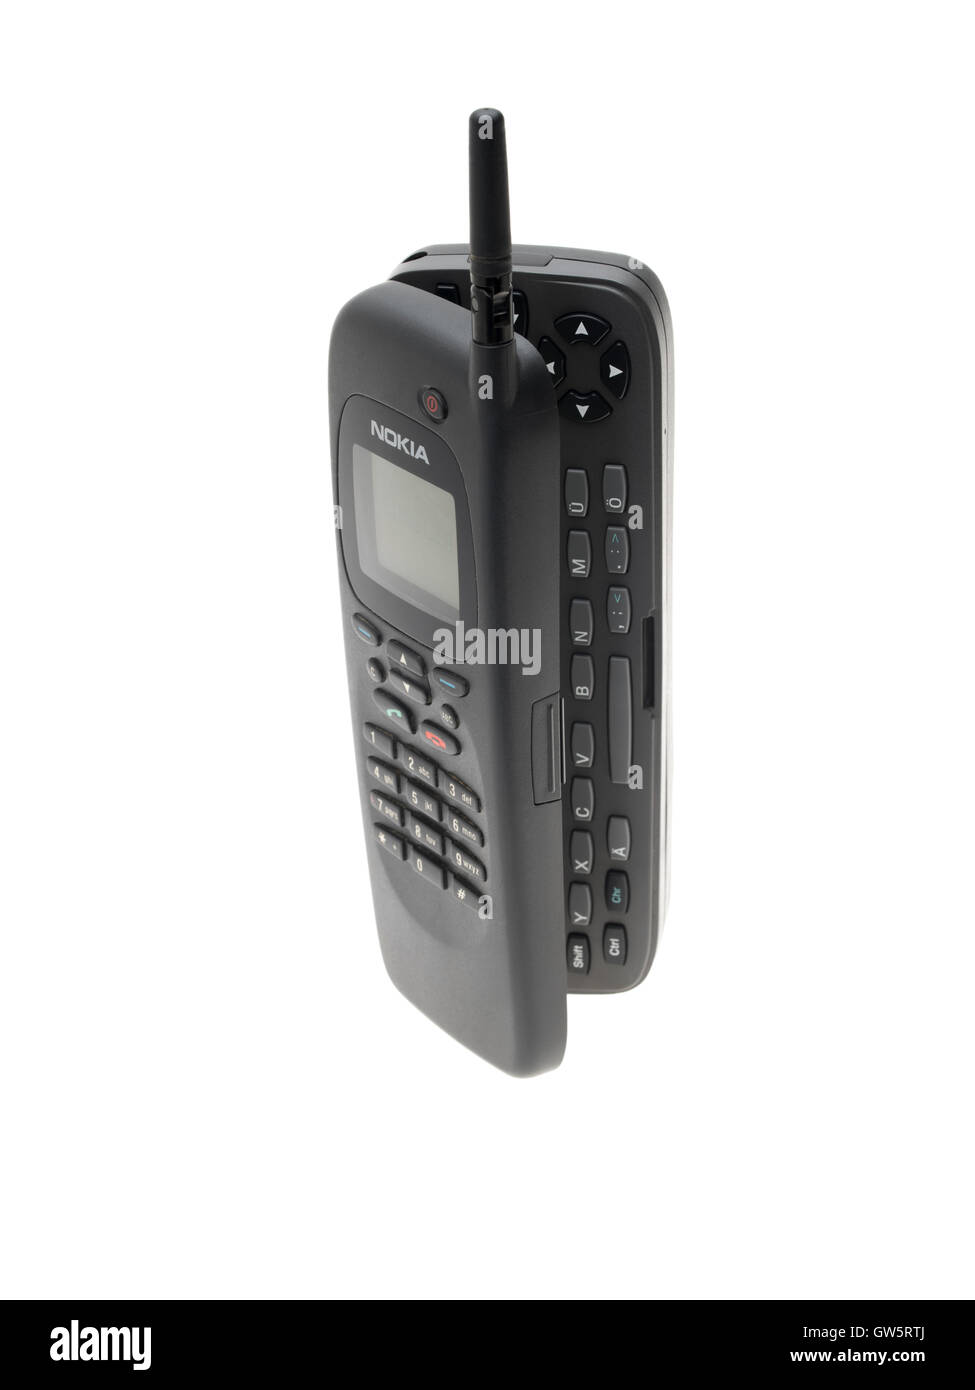 Nokia 9000 RAE-1N Communicator Phone from Finland  introduced in 1996. first smartphone on the market - Stock Image